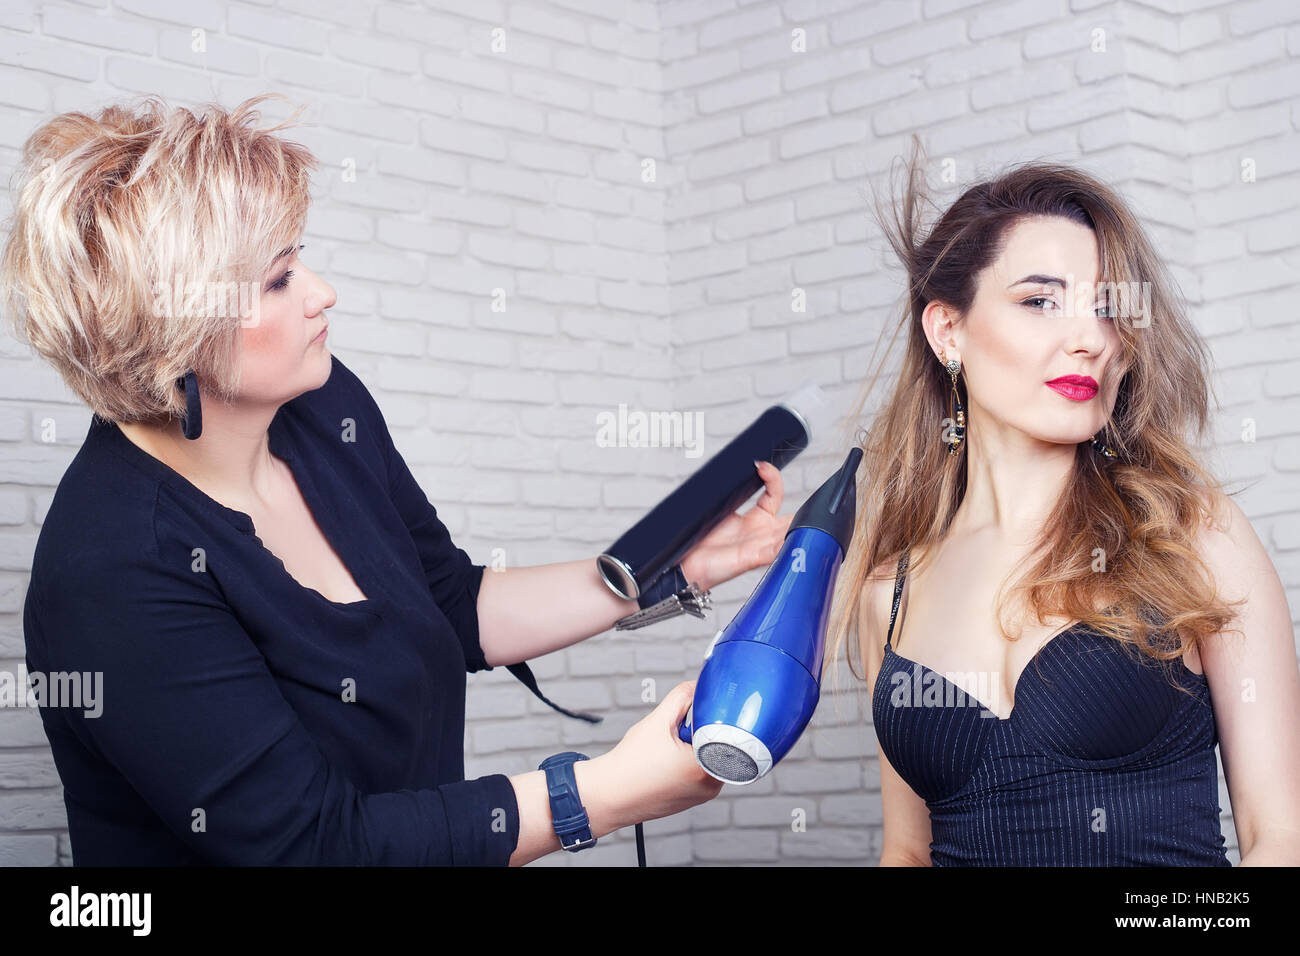 Hairdresser with hair dryer  - Stock Image